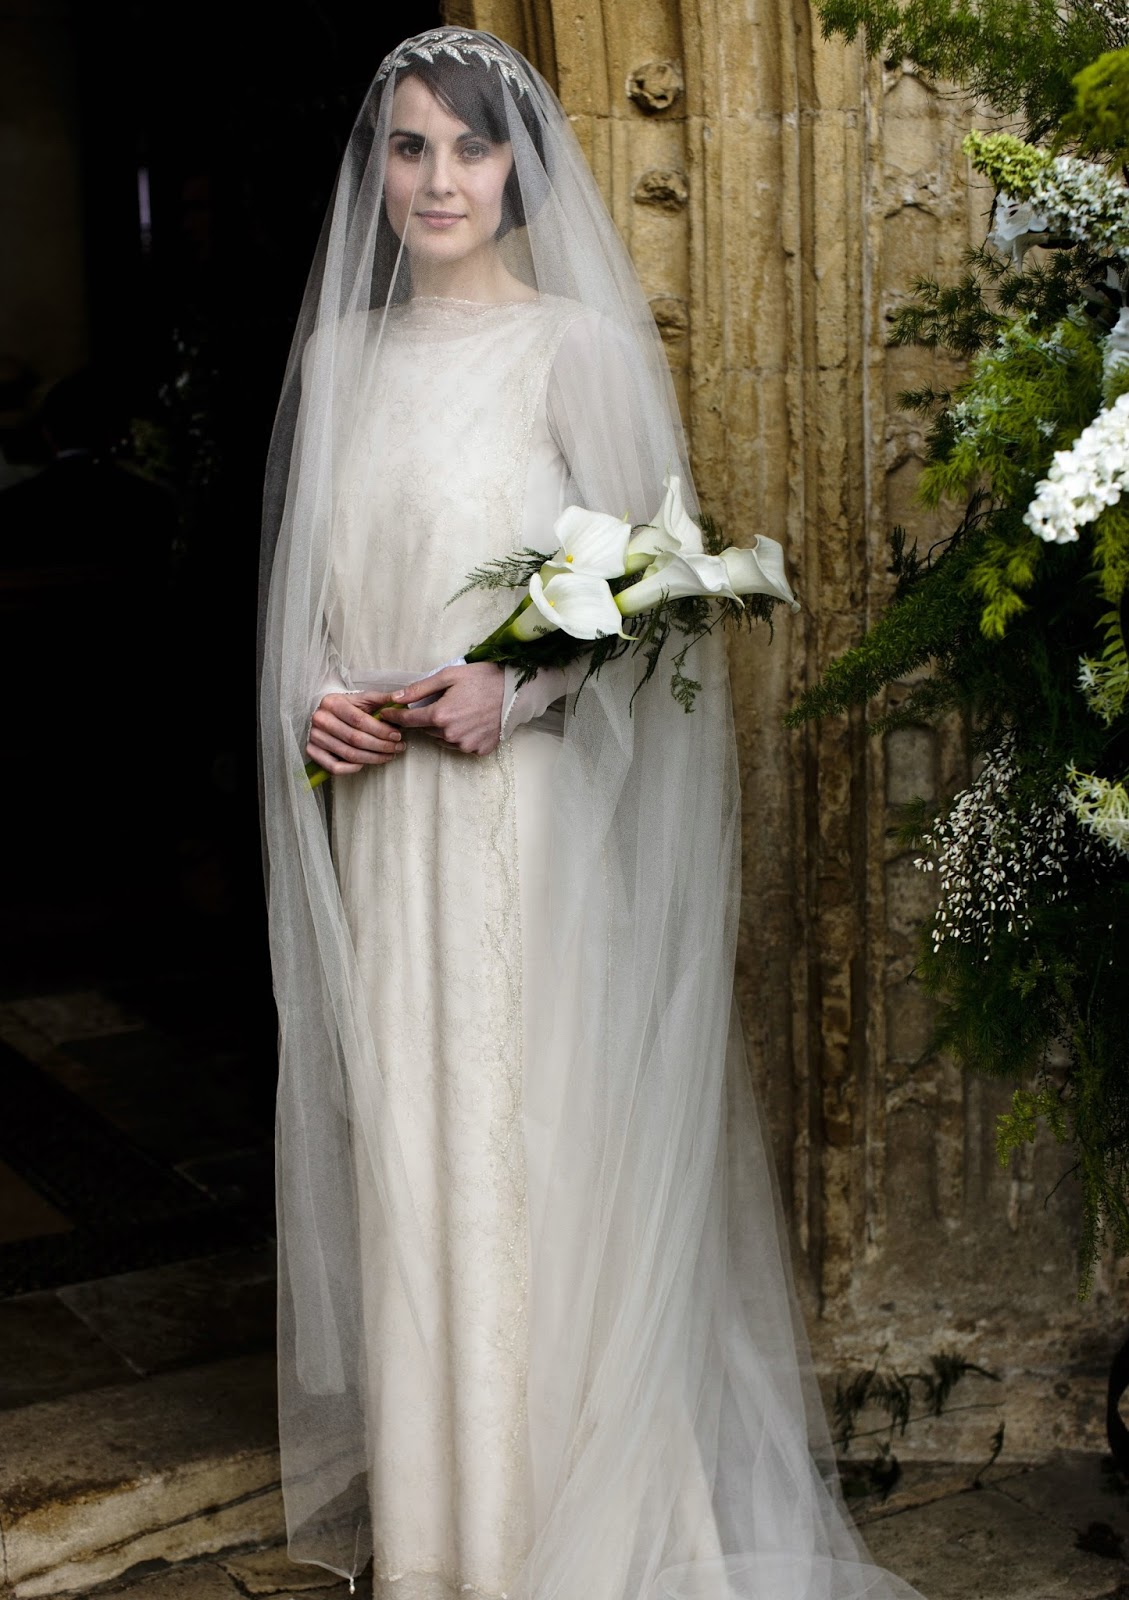 Dressybridal marry 39 s long sleeved wedding dress downton Downton abbey style wedding dress